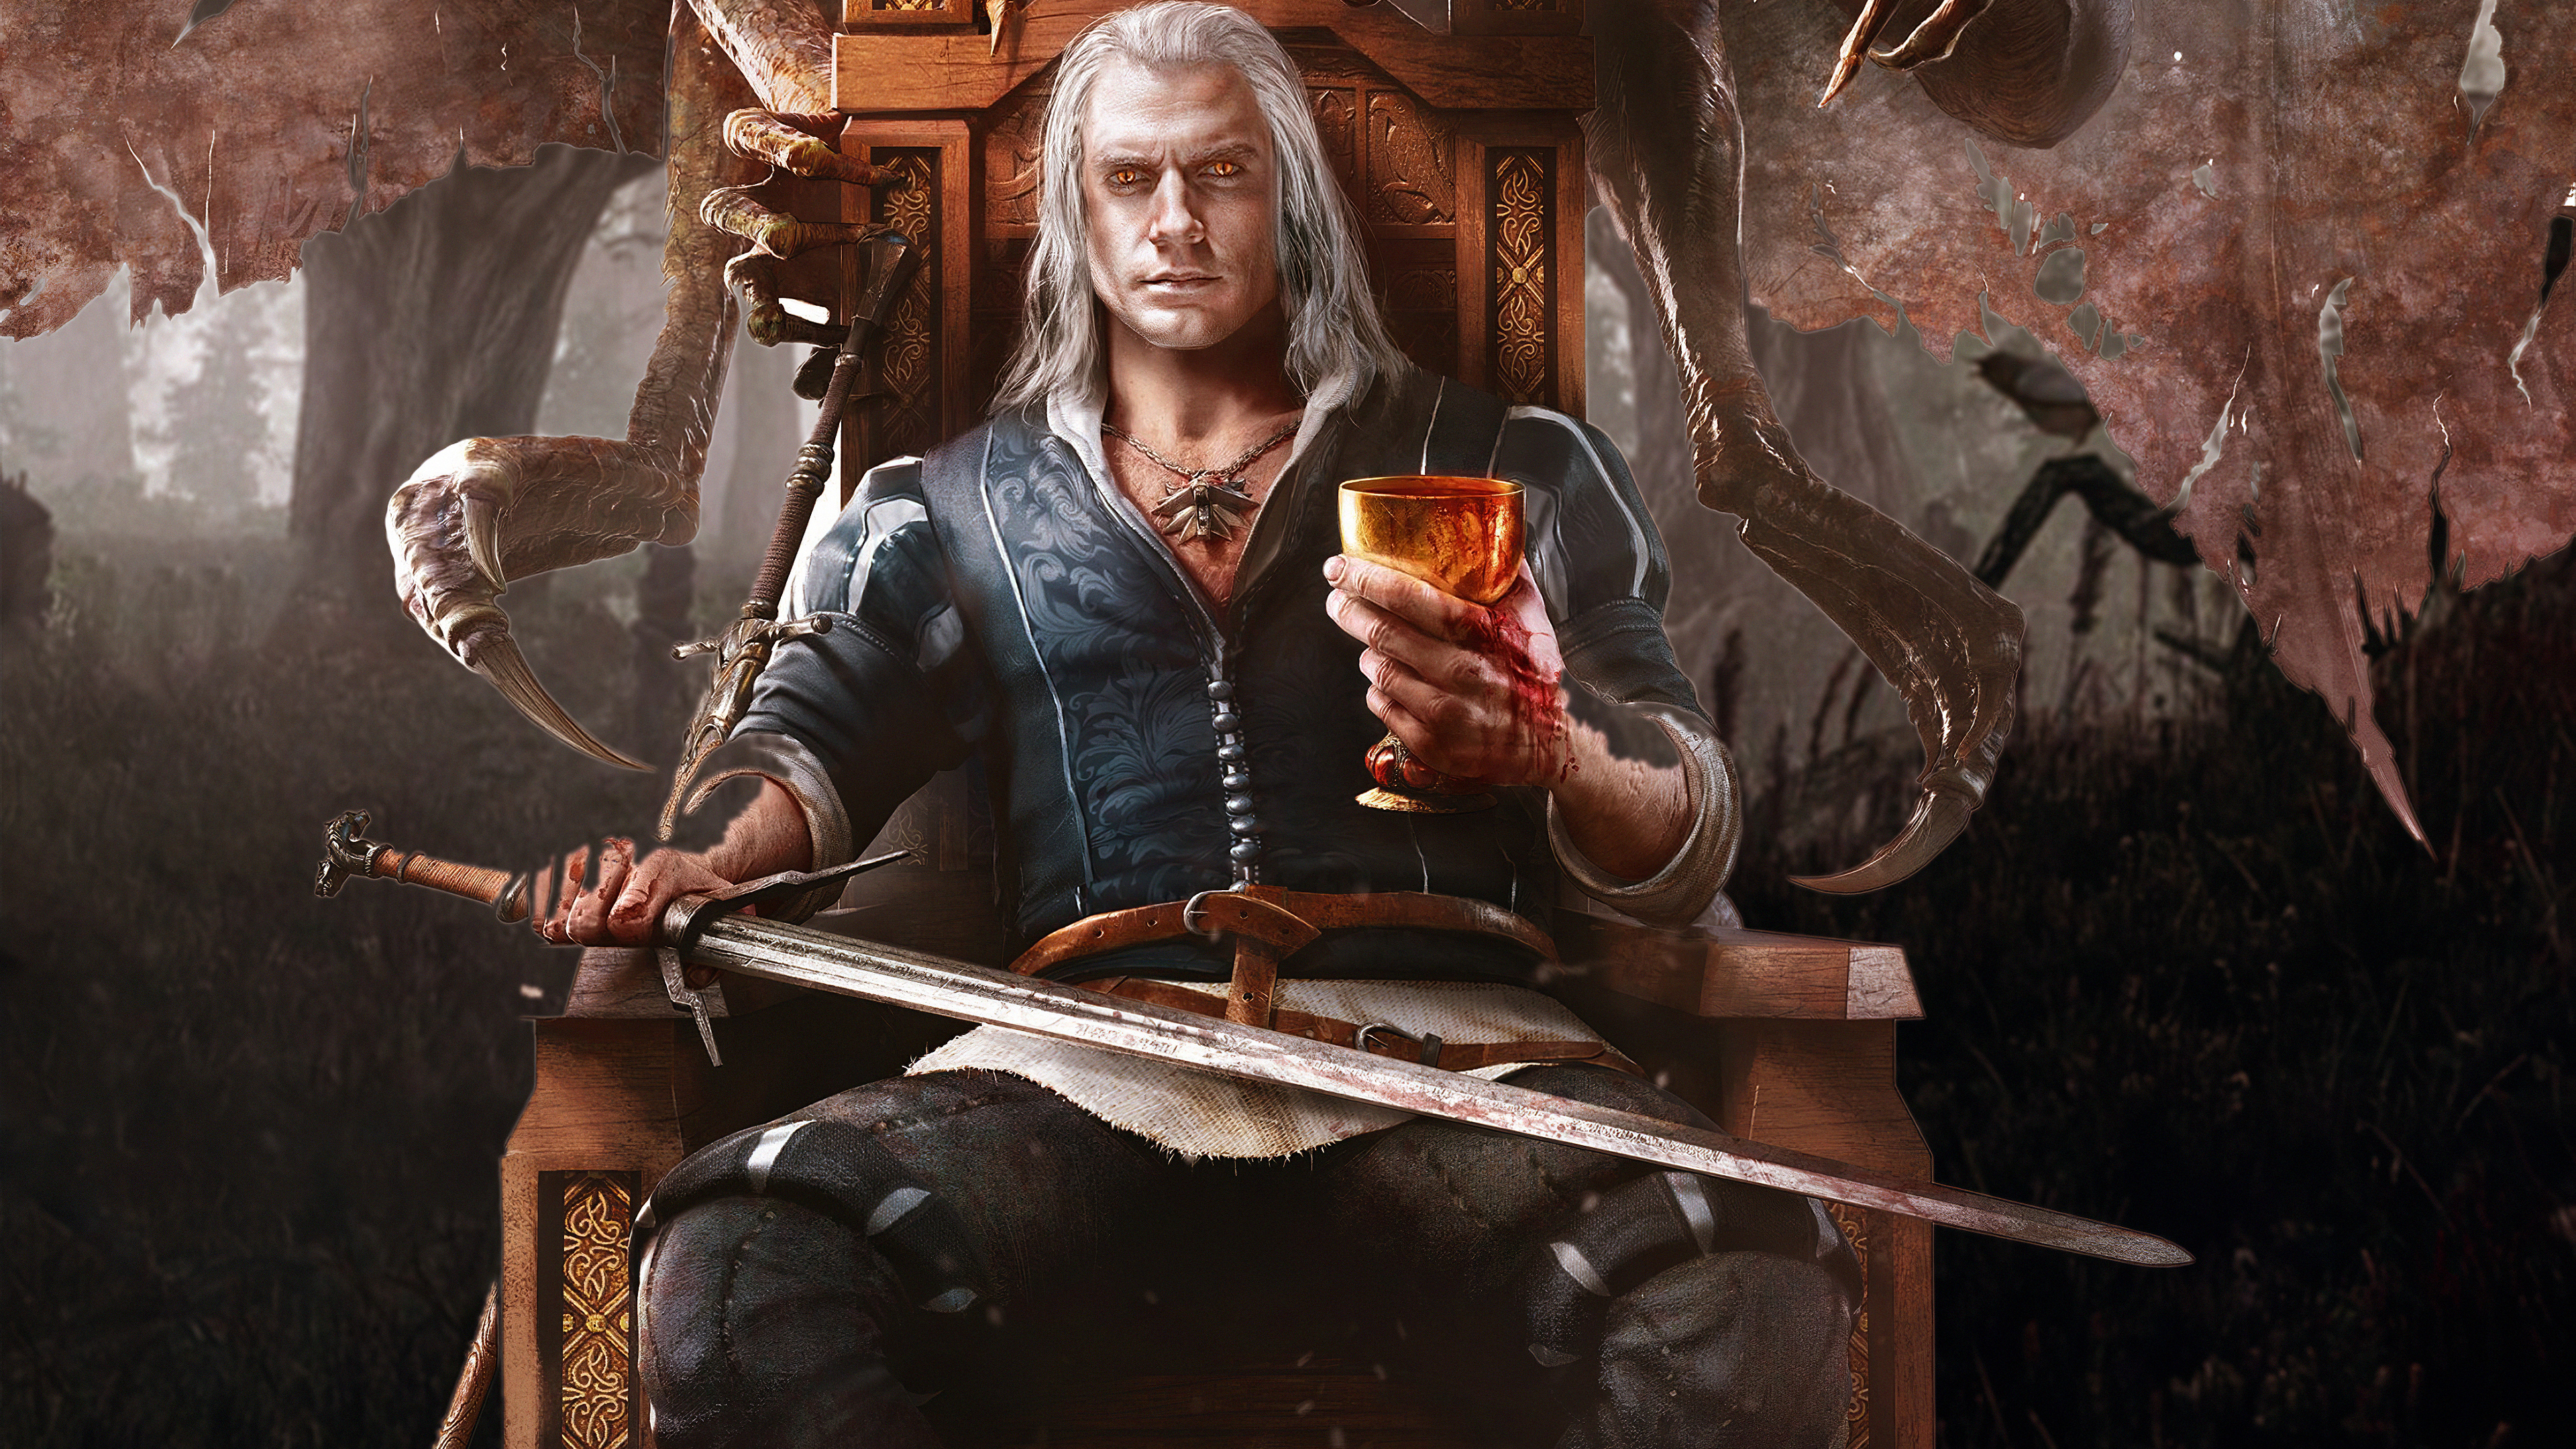 wicther henry art 1576972298 - Wicther Henry Art - The Witcher hd wallpaper, The Witcher background hd 4k, The Witcher 4k wallpaper